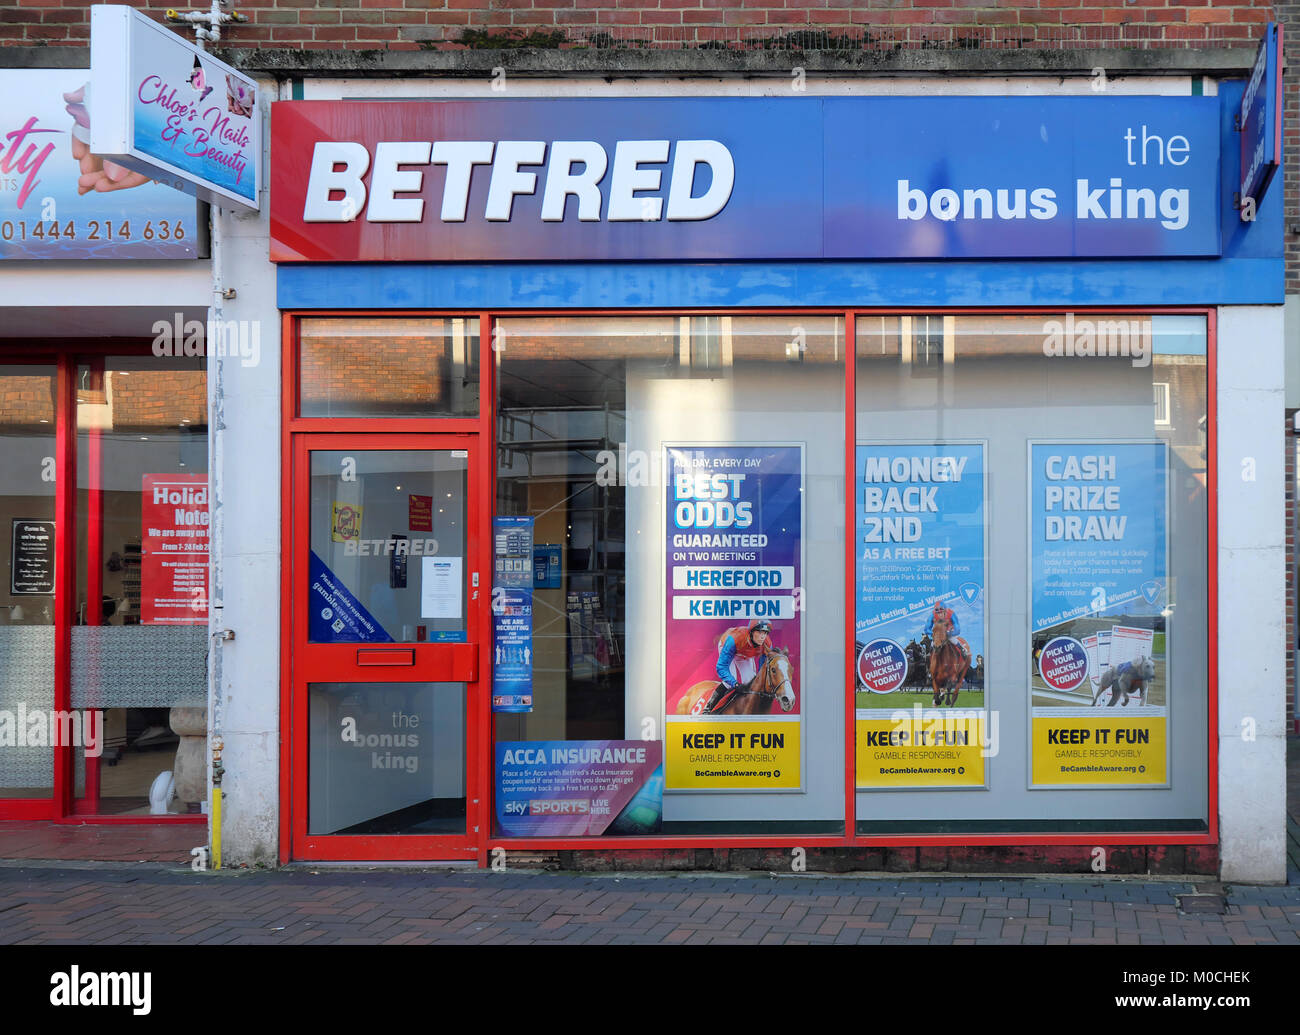 betfred betting shop in the church walk area of burgess that will be redeveloped starting in 2018 - Stock Image